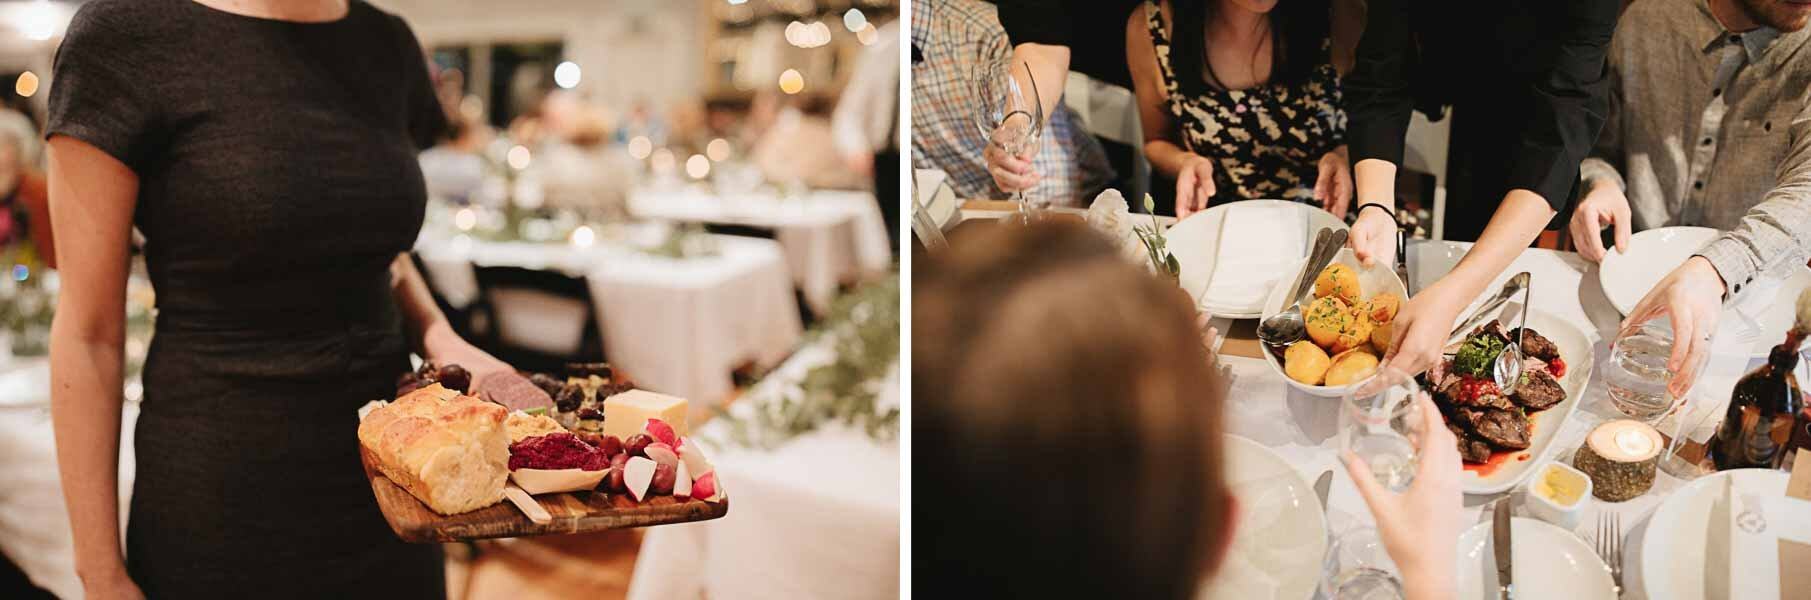 The Boatshed wedding catering